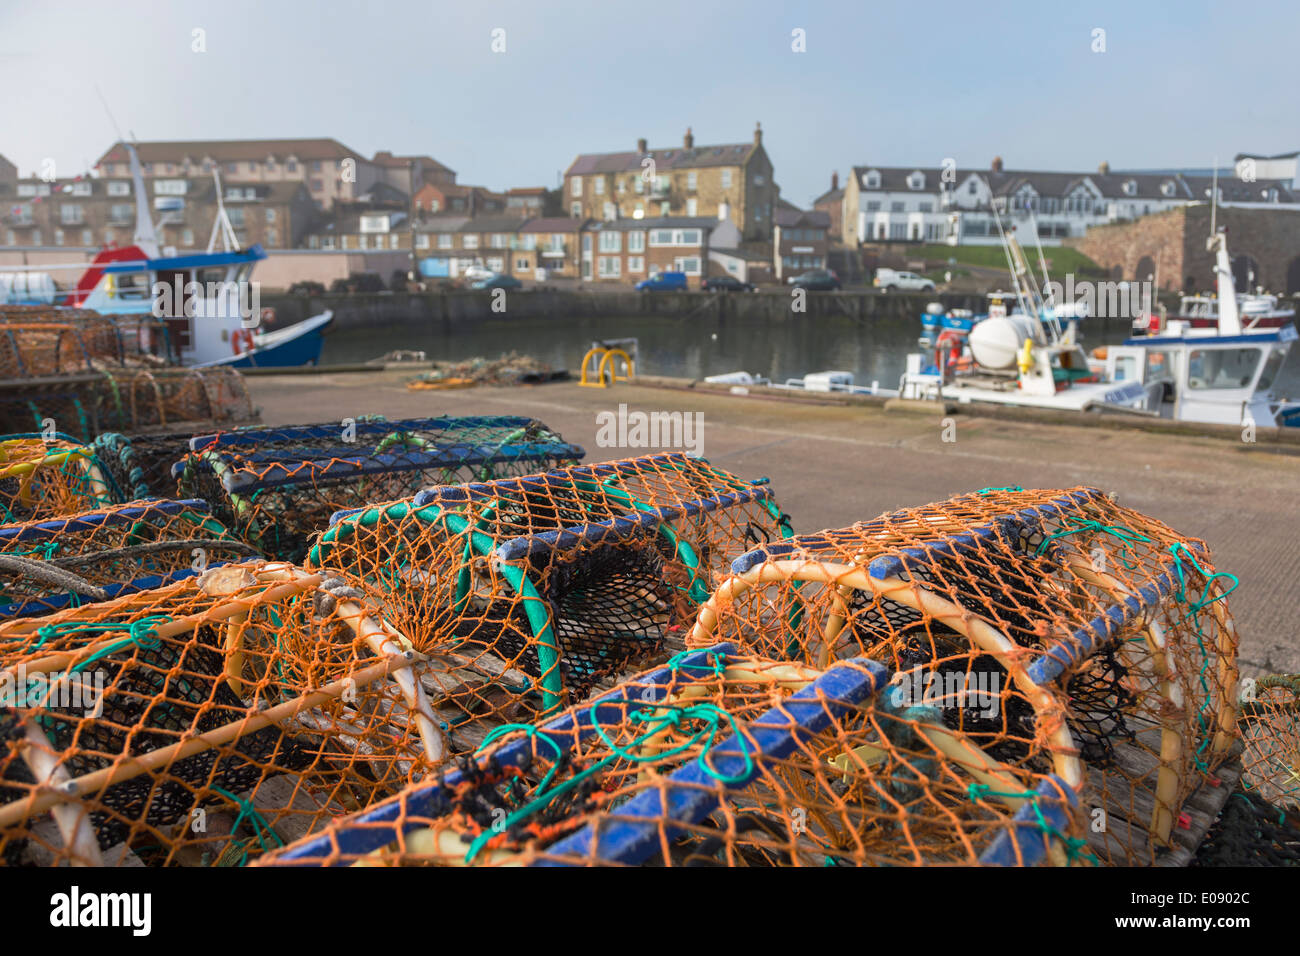 Lobster pots, Seahouses harbour, Northumberland, UK, April 2014 - Stock Image